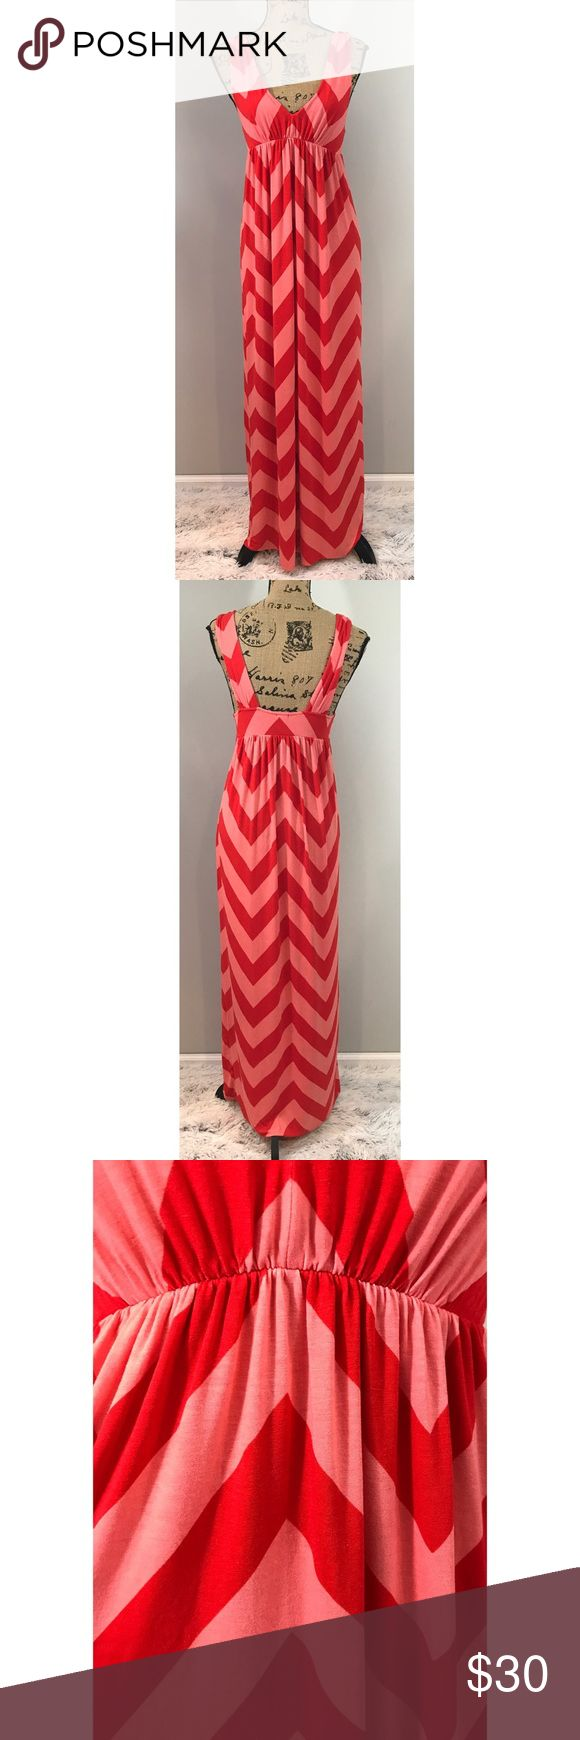 "JCrew orange Chevron Maxi dress JCrew. Medium. Fits like Small. V-neck, chevron maxi dress in coral and orange. Elastic under bust. Has stretch. Sold out online. Retail $84.50. B: 17"", Under bust: 13""-18"", H: 23"" L: 57"" J. Crew Dresses Maxi"